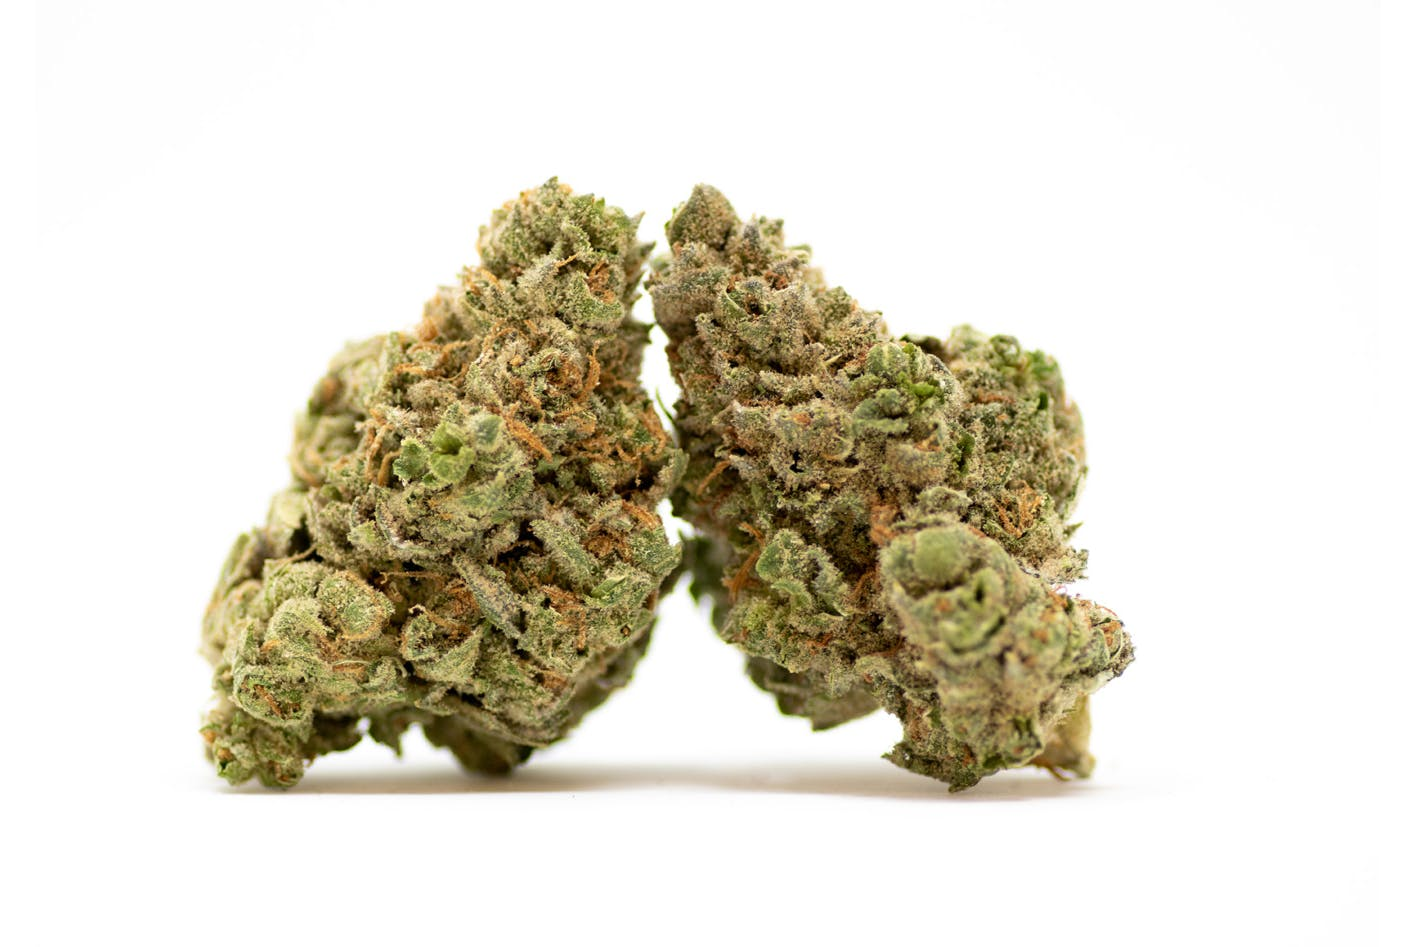 marijuana-dispensaries-29-franklin-st-needham-heights-g-s-o-g-x-m-o-b